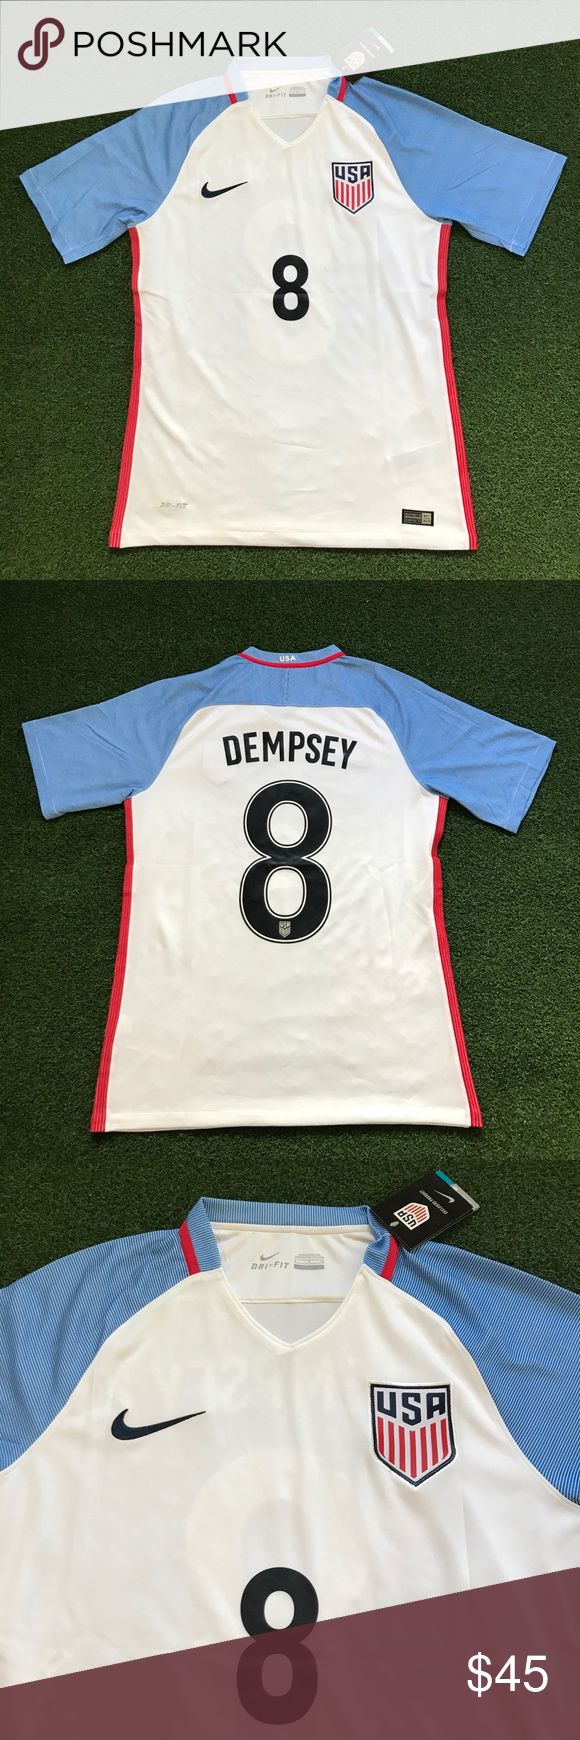 DEMPSEY USA Soccer Jersey white home short sleeve New with tags! 2016-2017 white home USA men's national soccer / futbol team short sleeve jersey with blue sleeves and DEMPSEY #8 on back! Clint Dempsey - World Cup 2018 - United States of America Shirts Tees - Short Sleeve